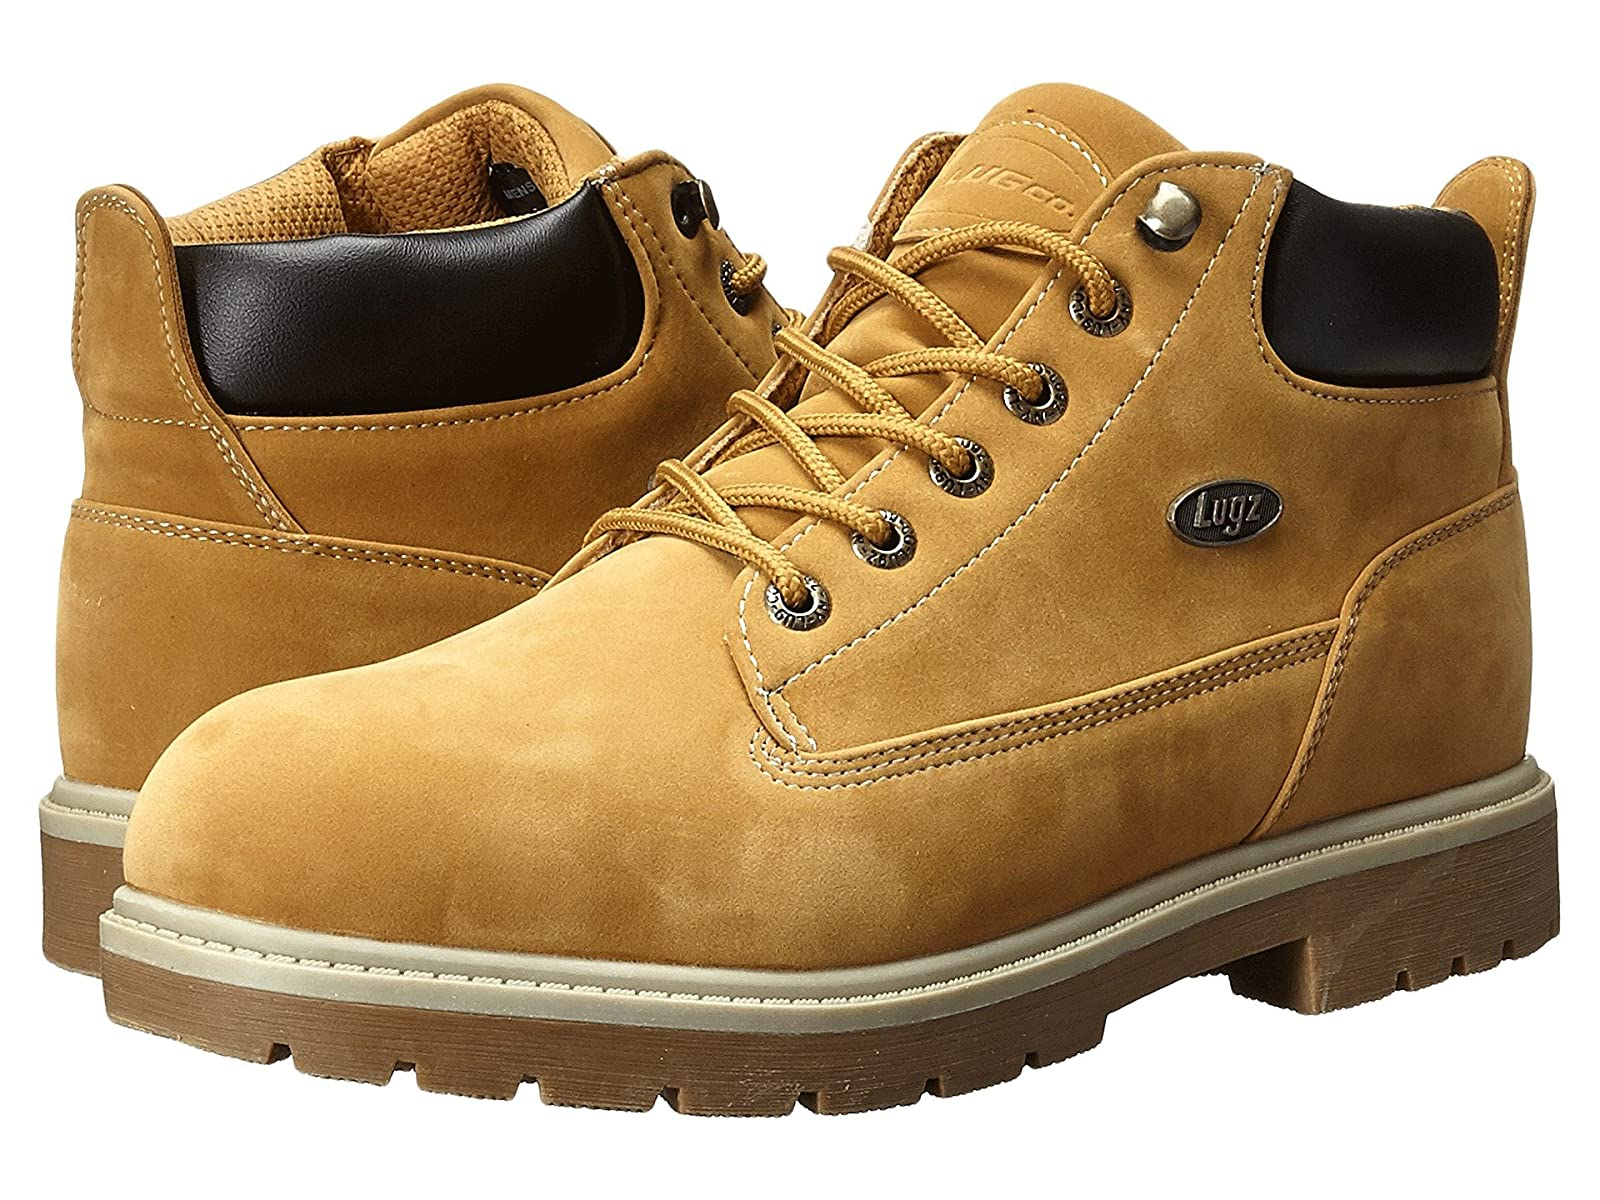 Lugz Warrant MidCheap and distinctive eye-catching shoes